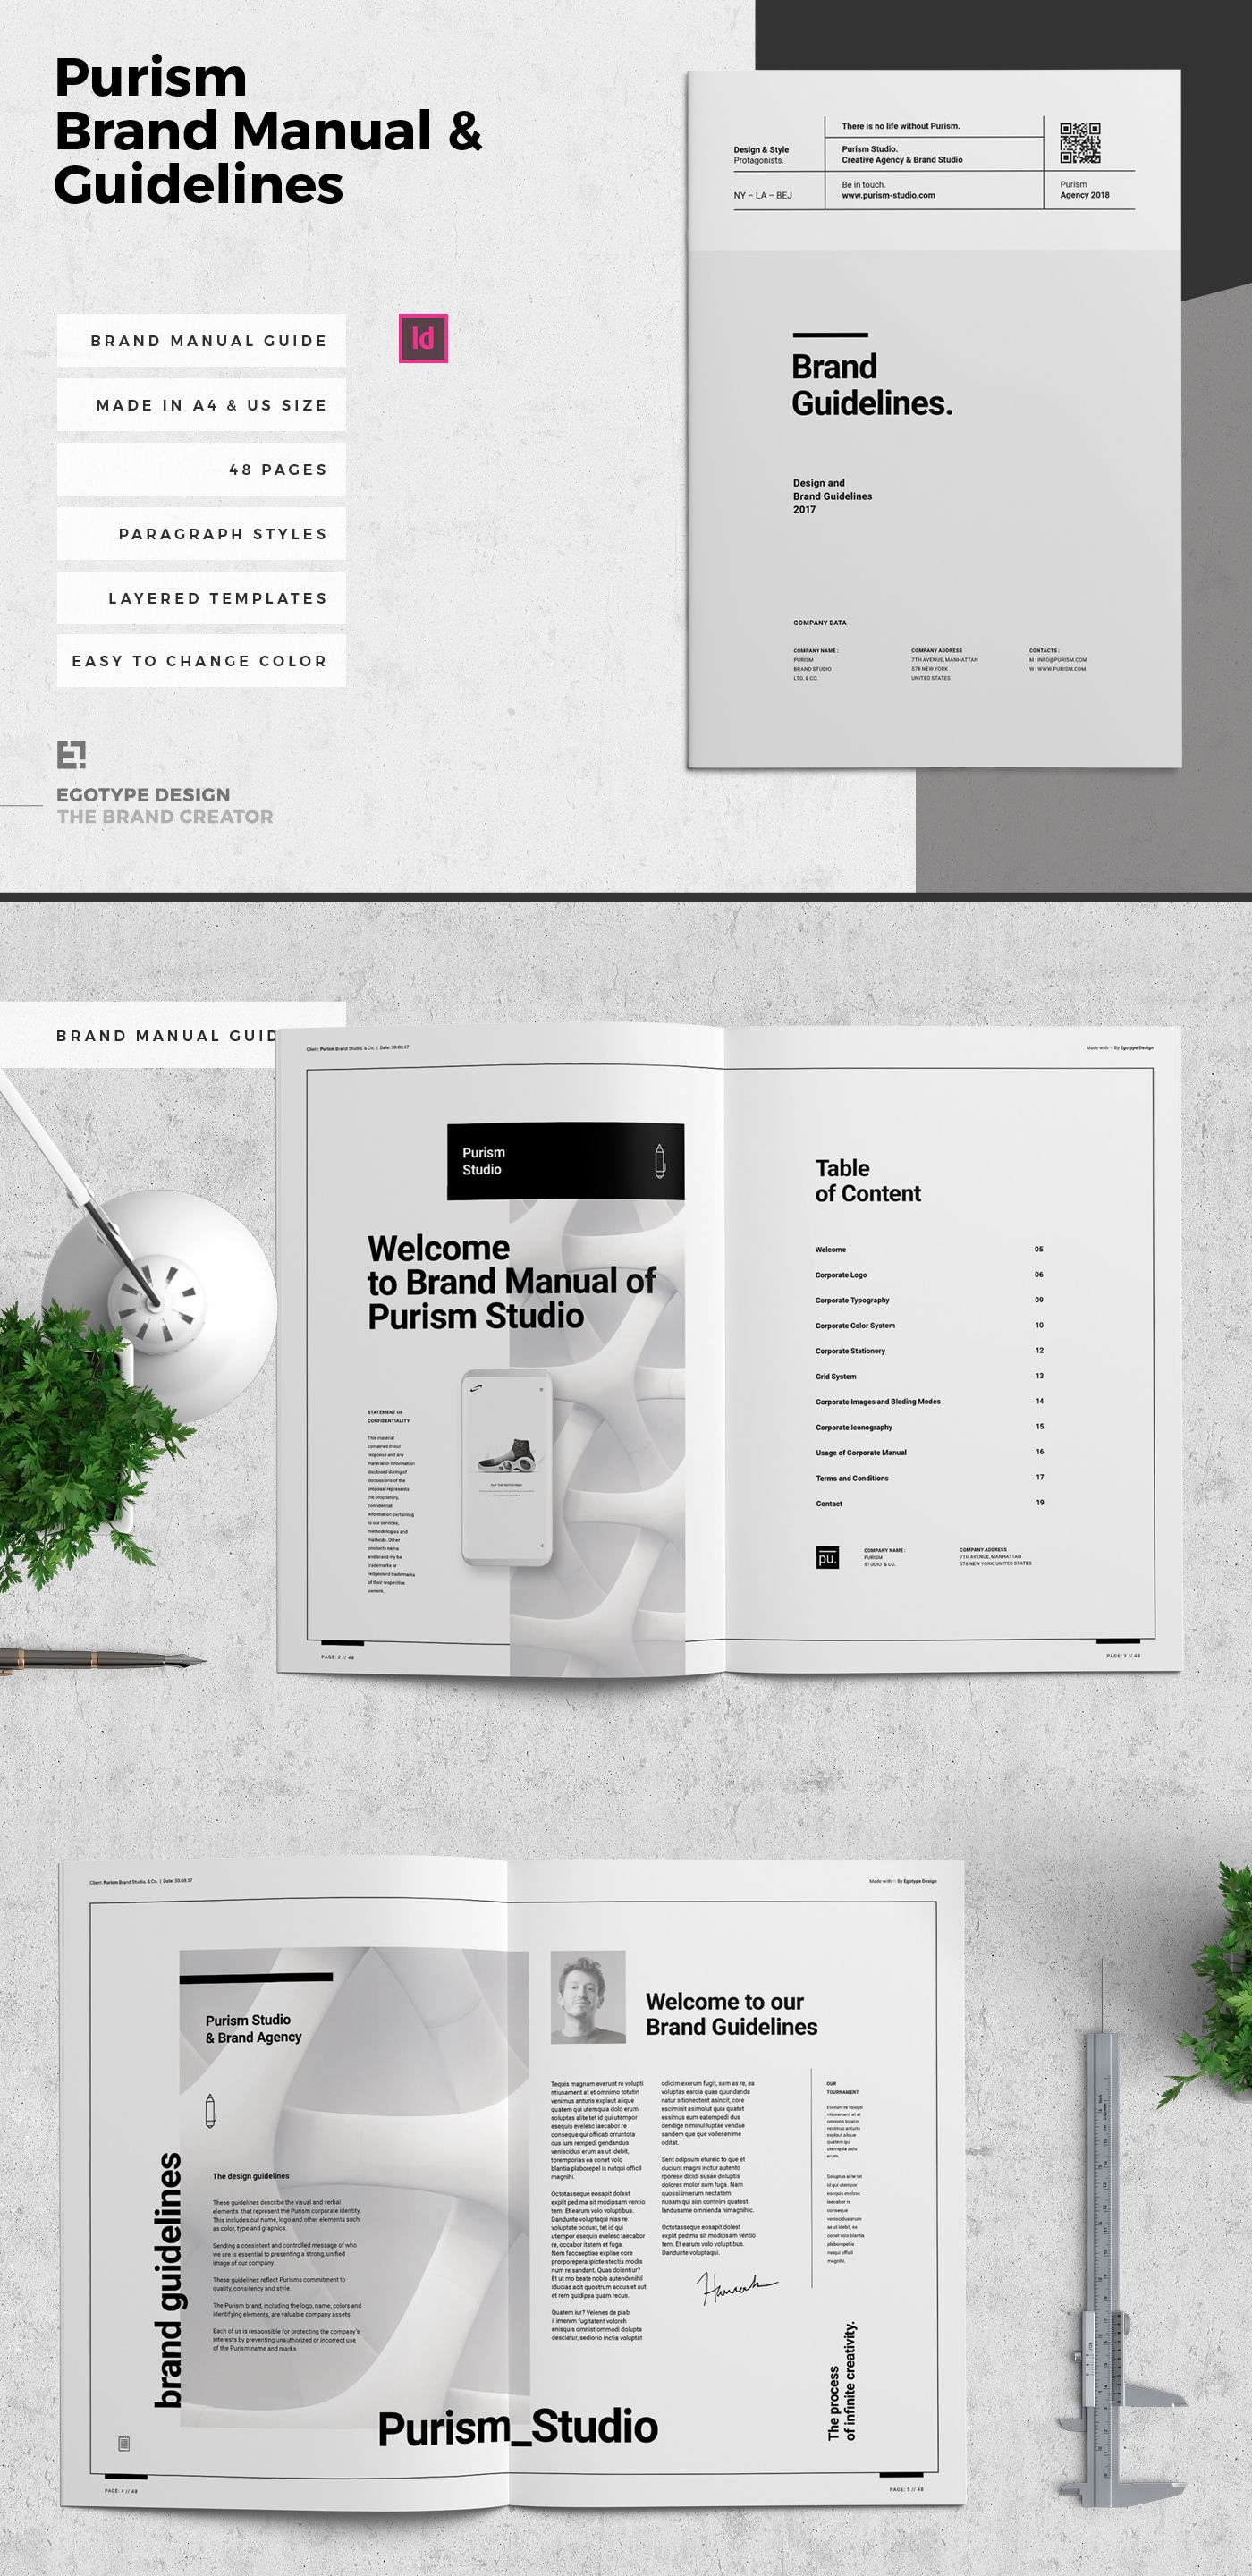 Check Out This Behance Project Purism Brand Manual Guidelines Https Www Behance Net Gallery 582 Brand Manual Portfolio Template Design Brand Guidelines